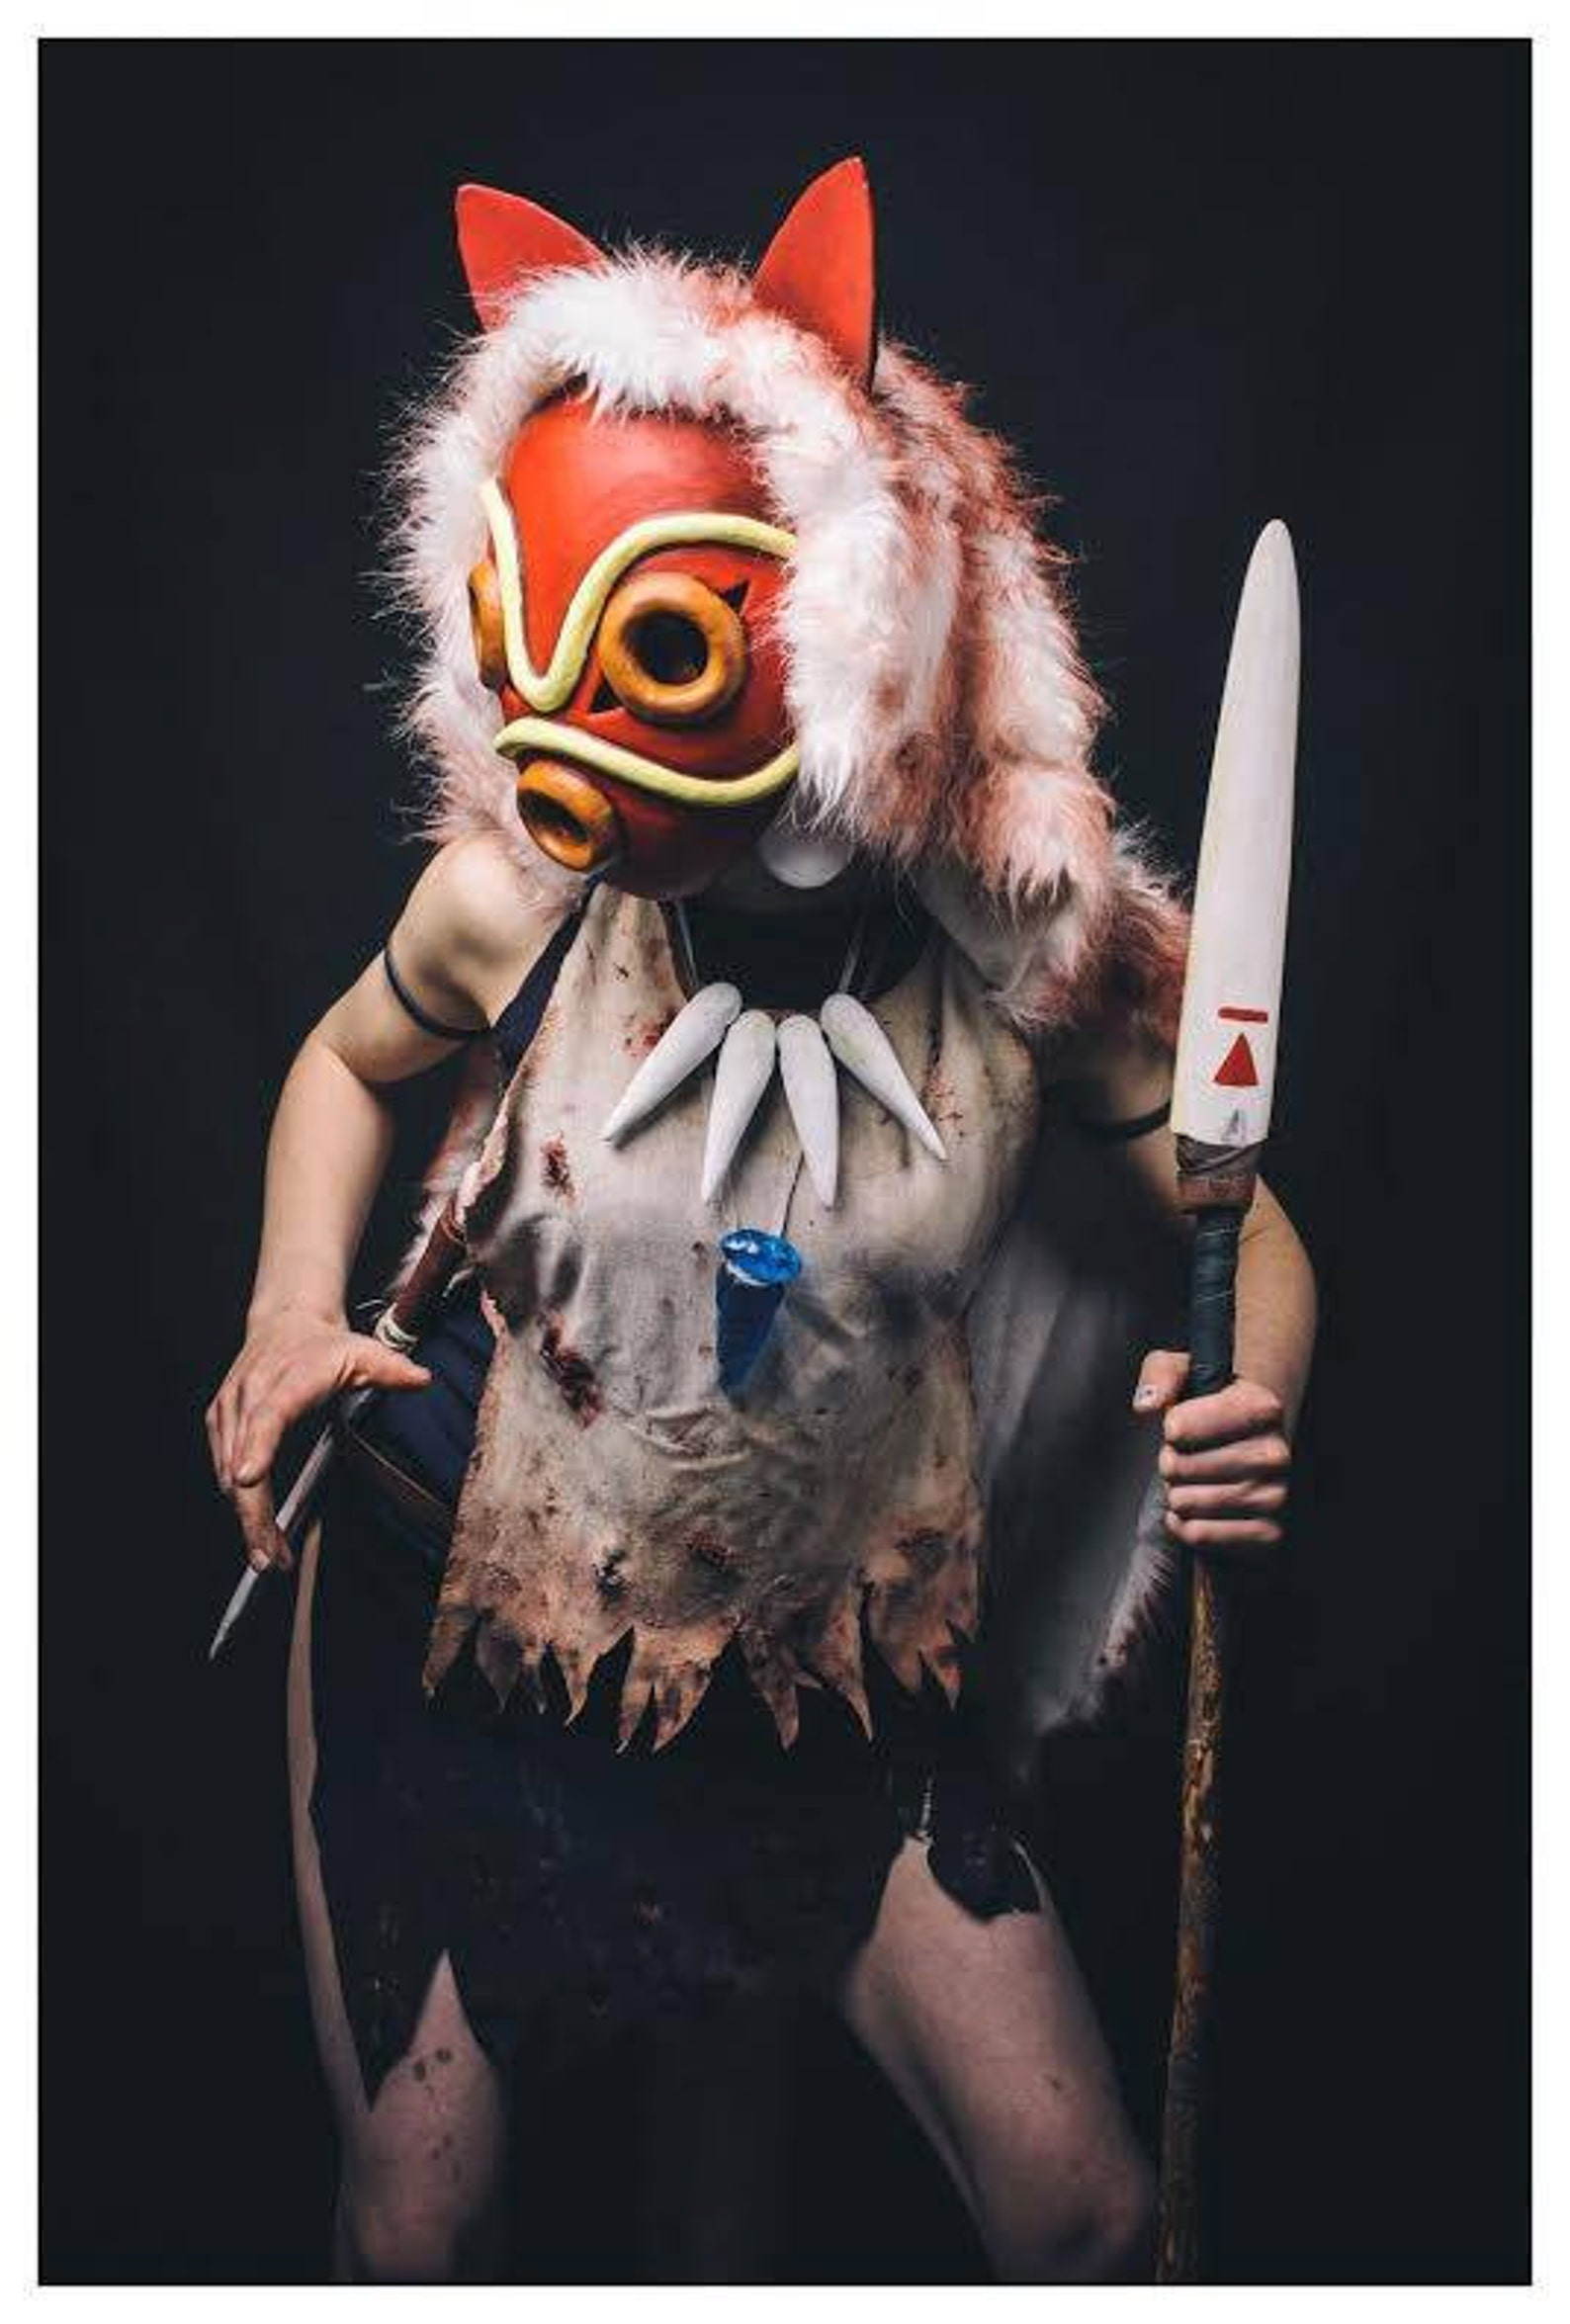 Princes Mononoke full costume all handmade Cosplay Very good quality and details